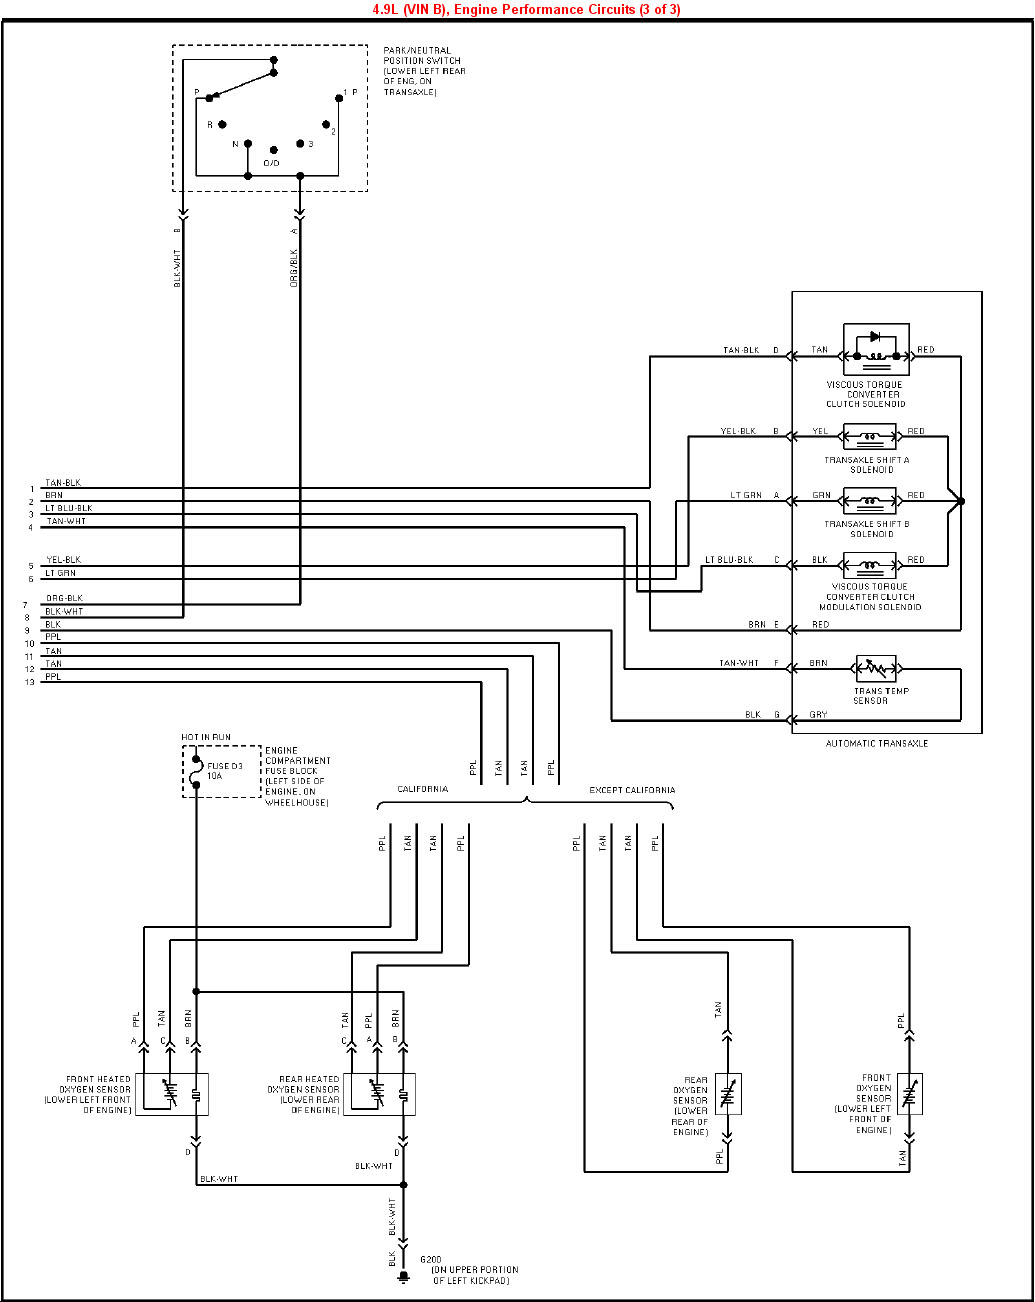 1995 Cadillac Wiring Diagram : 28 Wiring Diagram Images